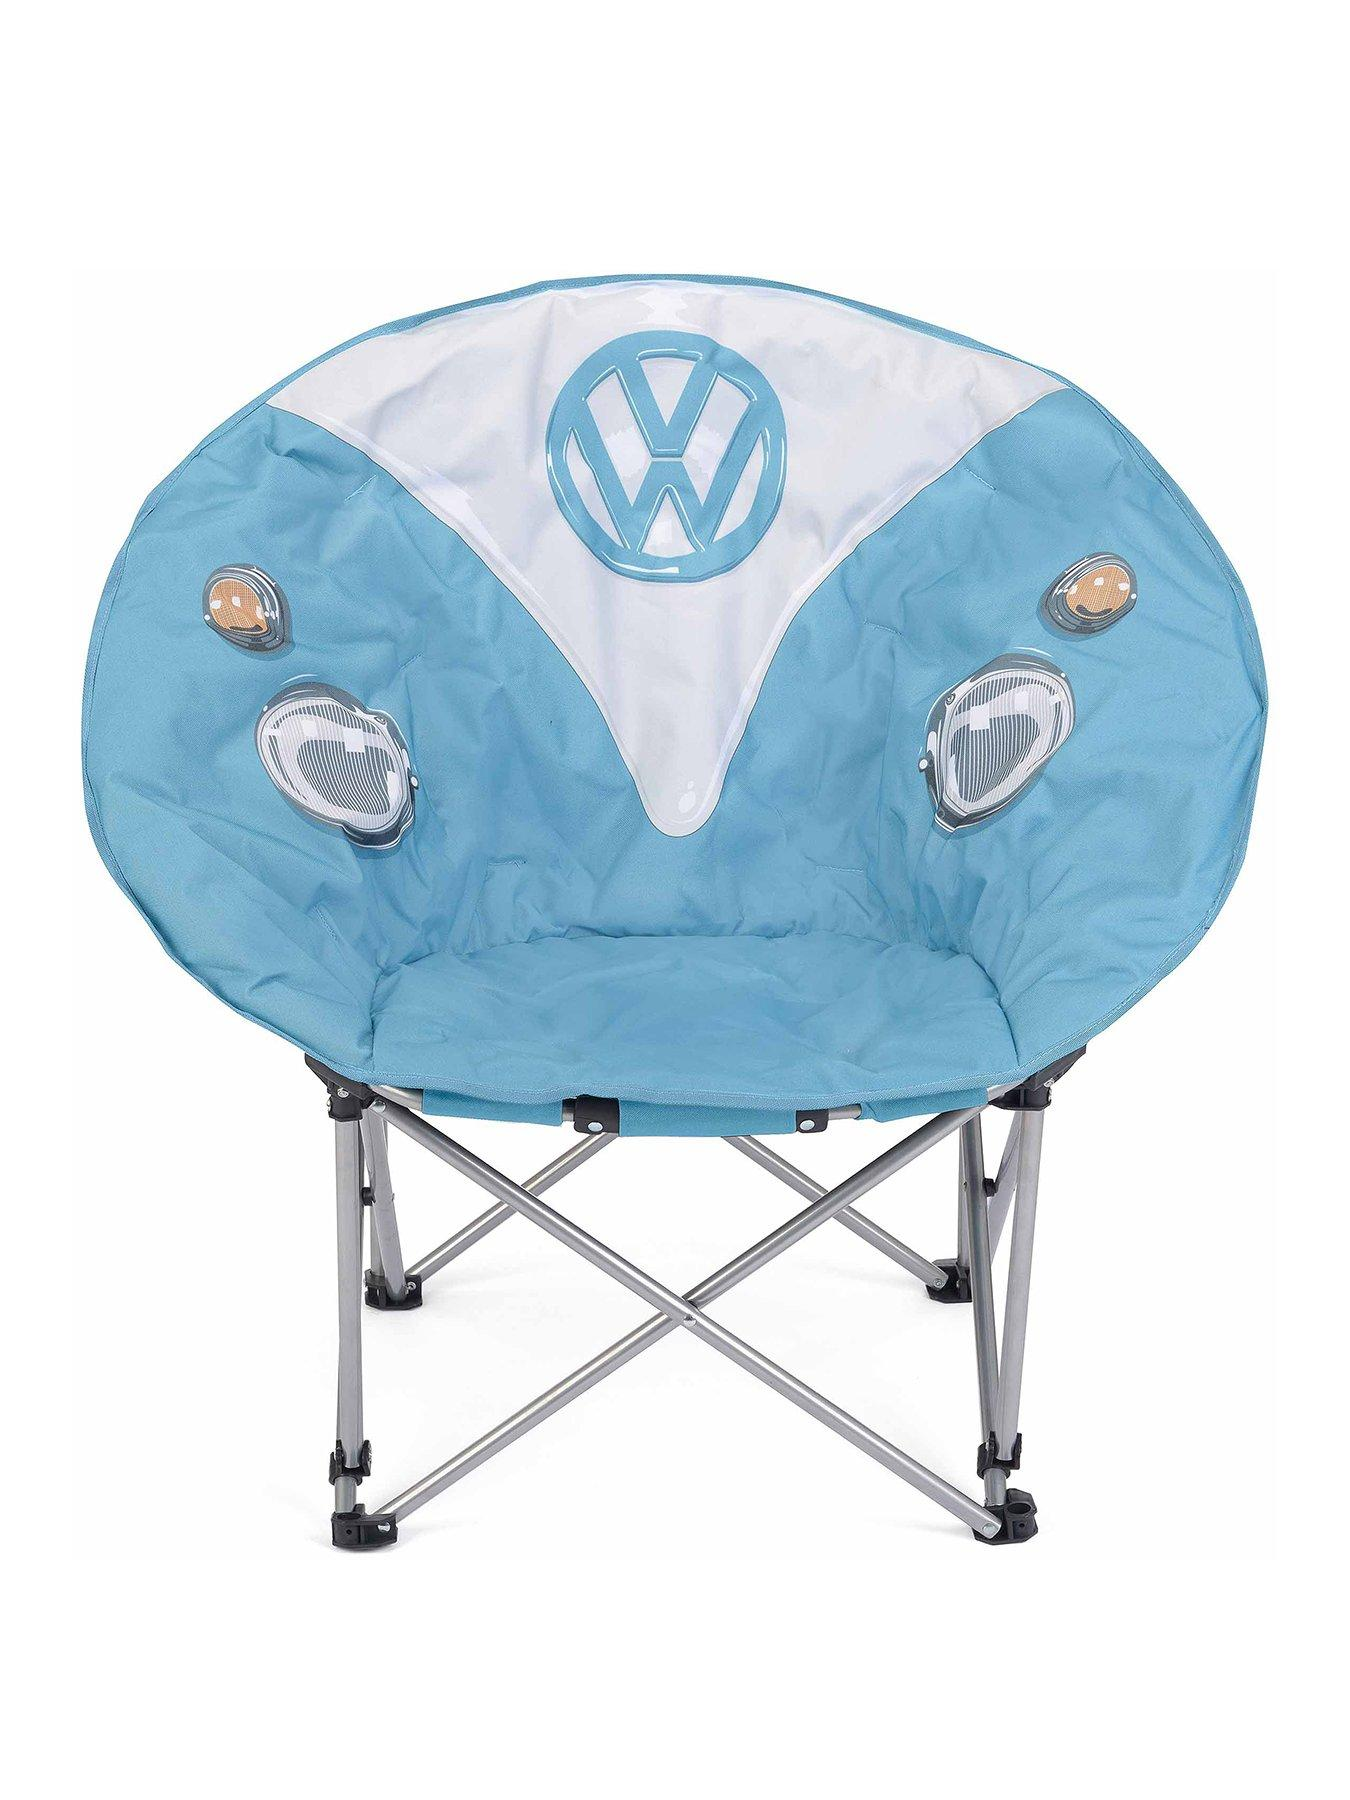 Camping furniture | Camping | Sports & leisure | www